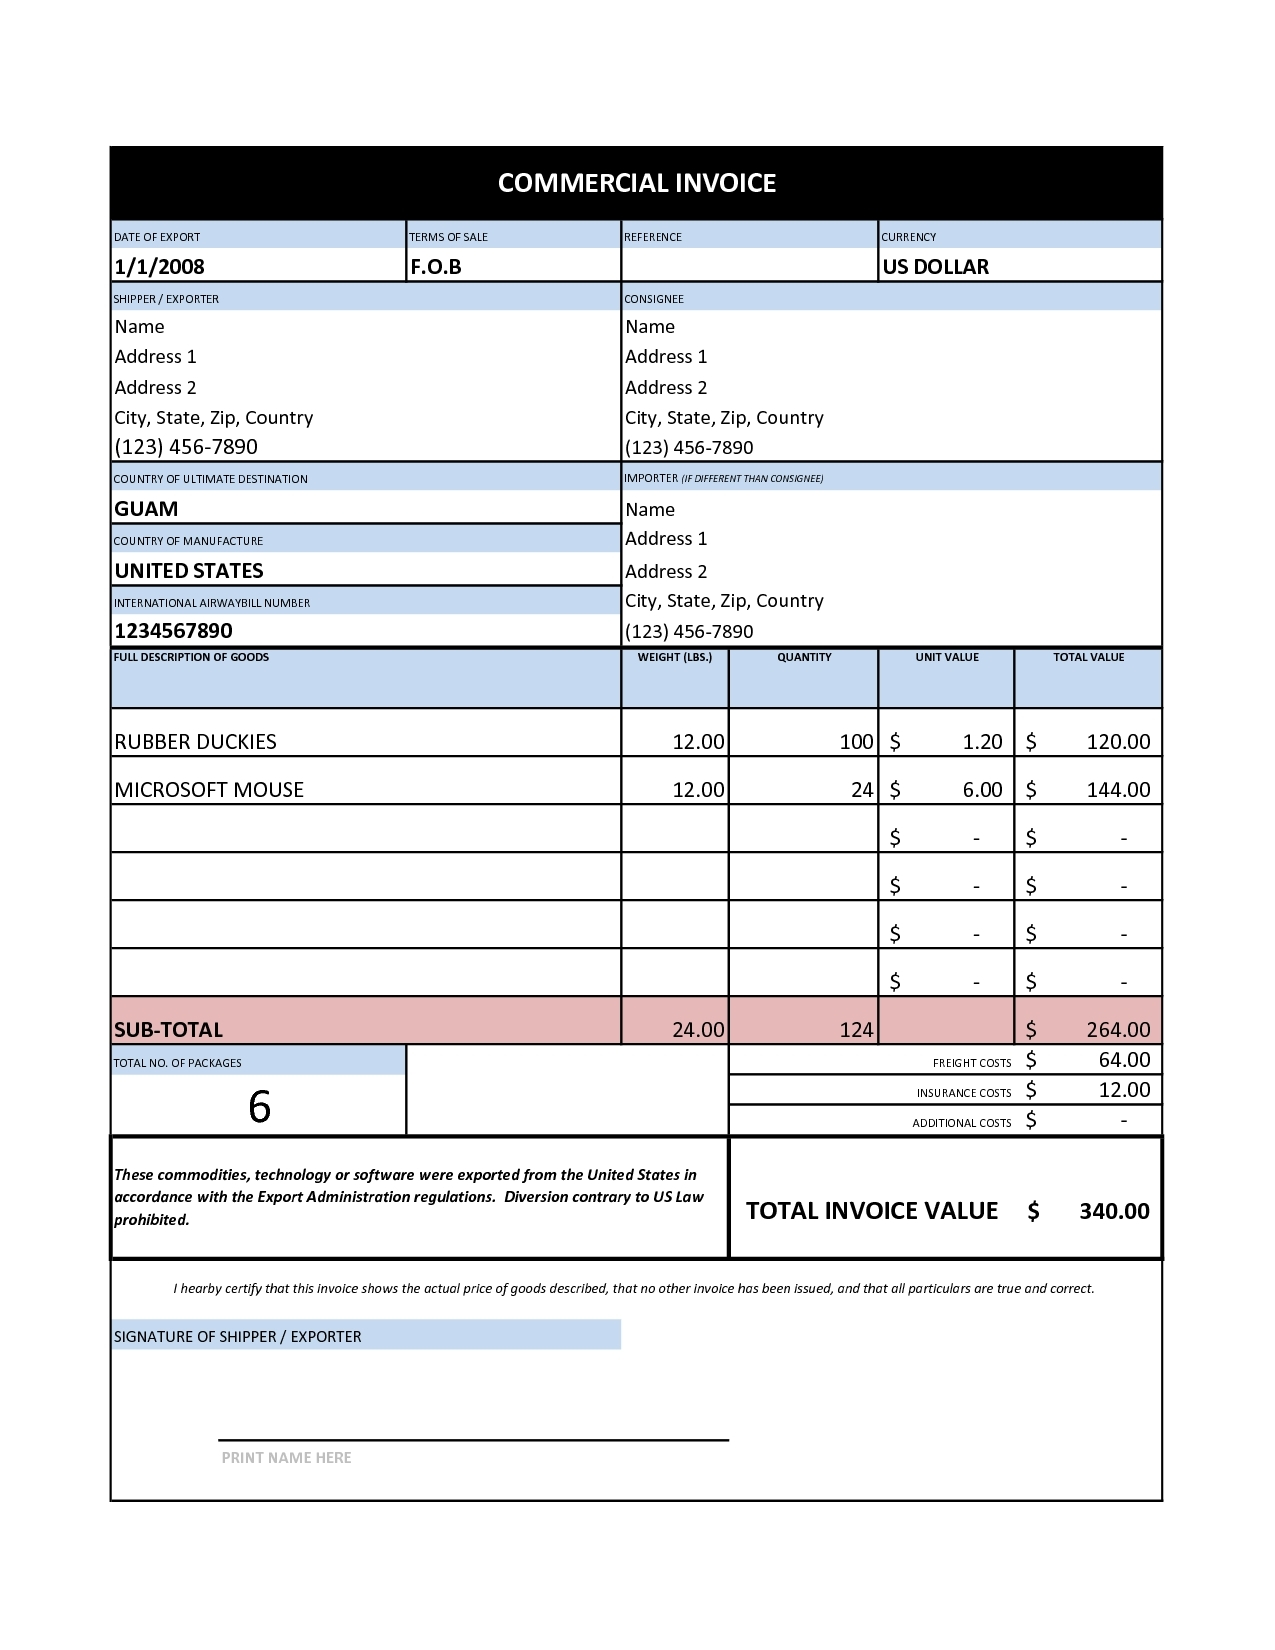 doc 513666 mock invoice template free for in excel 2010 sanusmentis template for invoice in excel